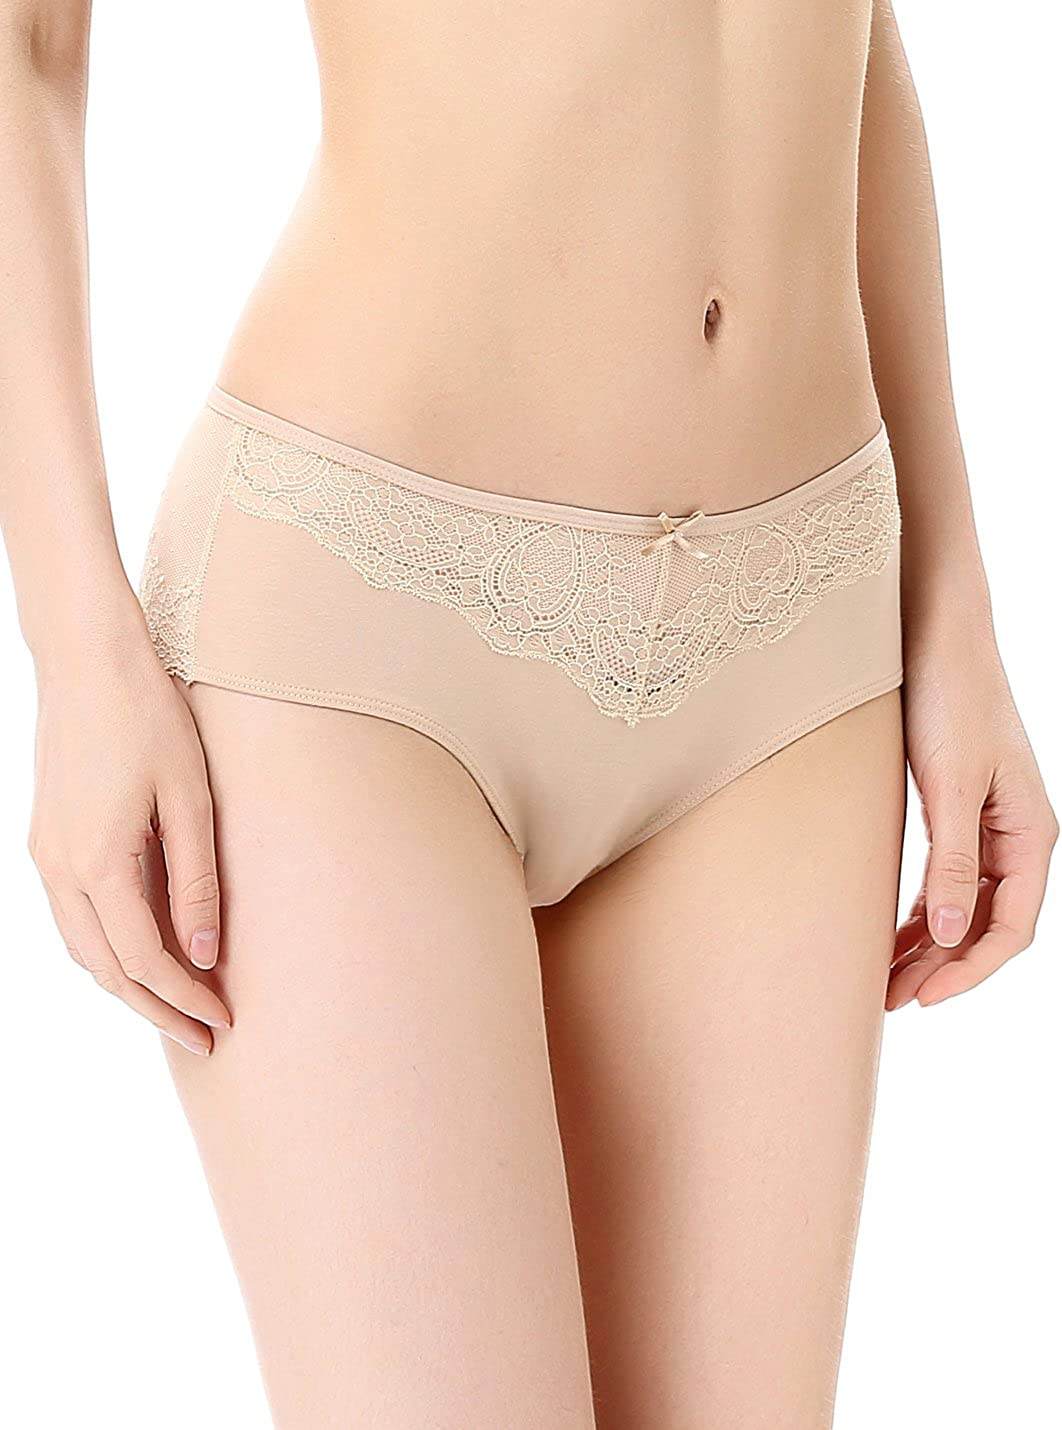 LIQQY Womens 3 Pack Cotton Invisible Lace Coverage Hipster Brief Panty Underwear